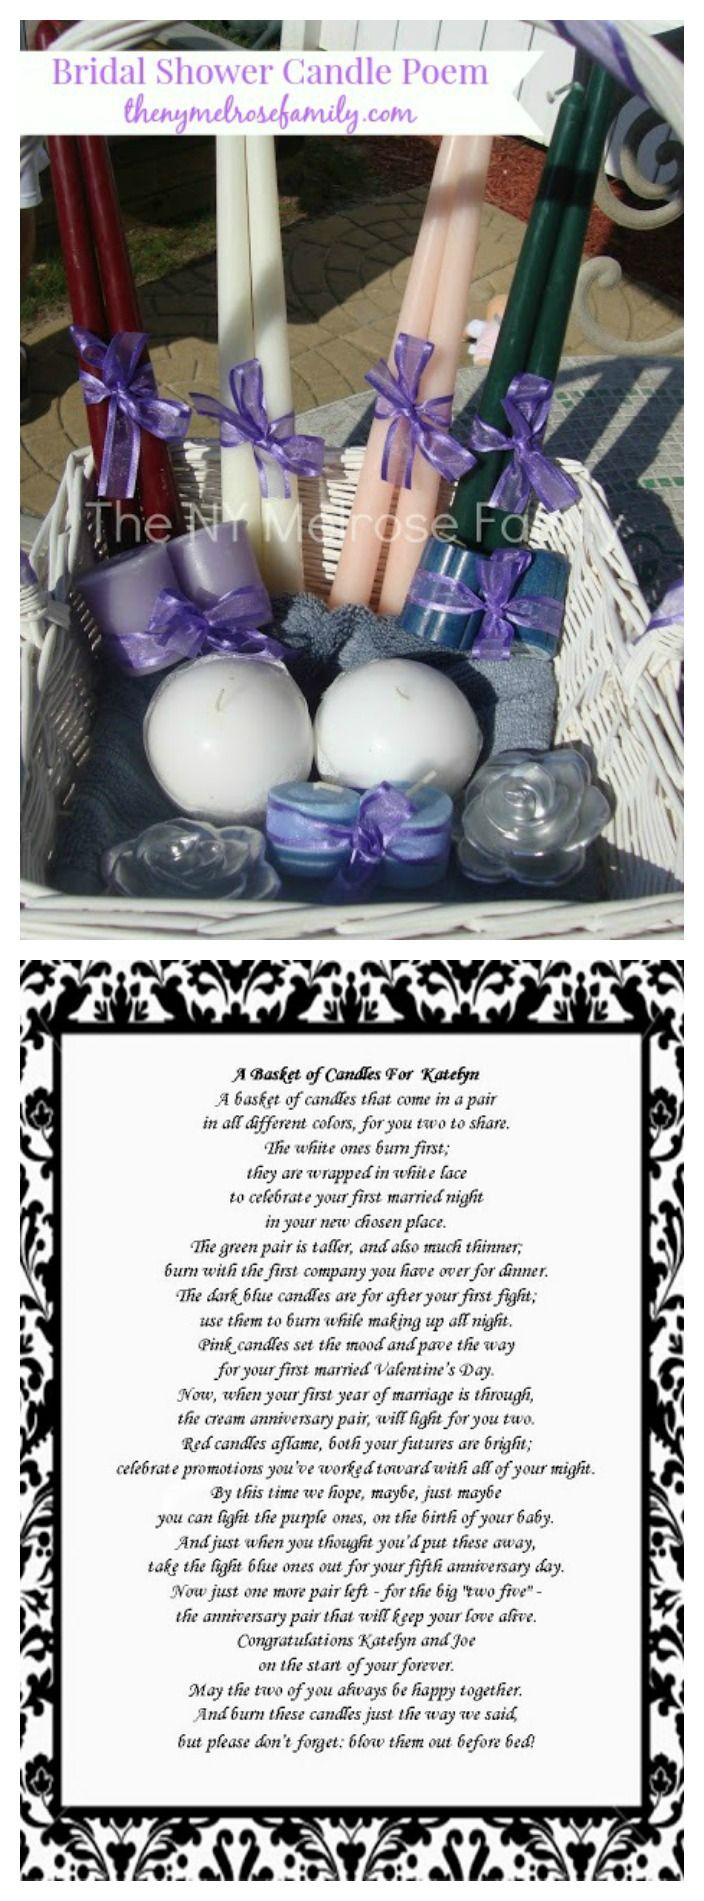 The absolute perfect Bridal Shower Gift!  A candle poem that will make the bride tear up.